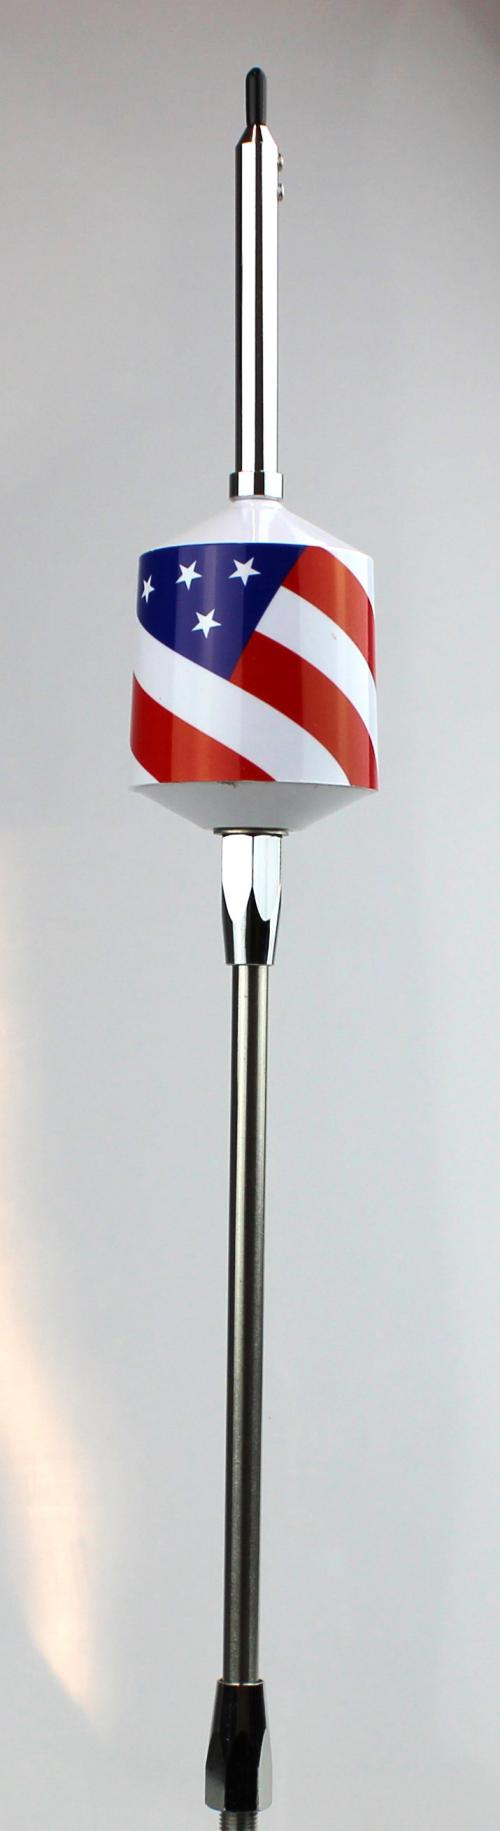 Wilson Trucker 2000 American Flag Limited Edition 3500 Watt CB Antenna 305FLAG